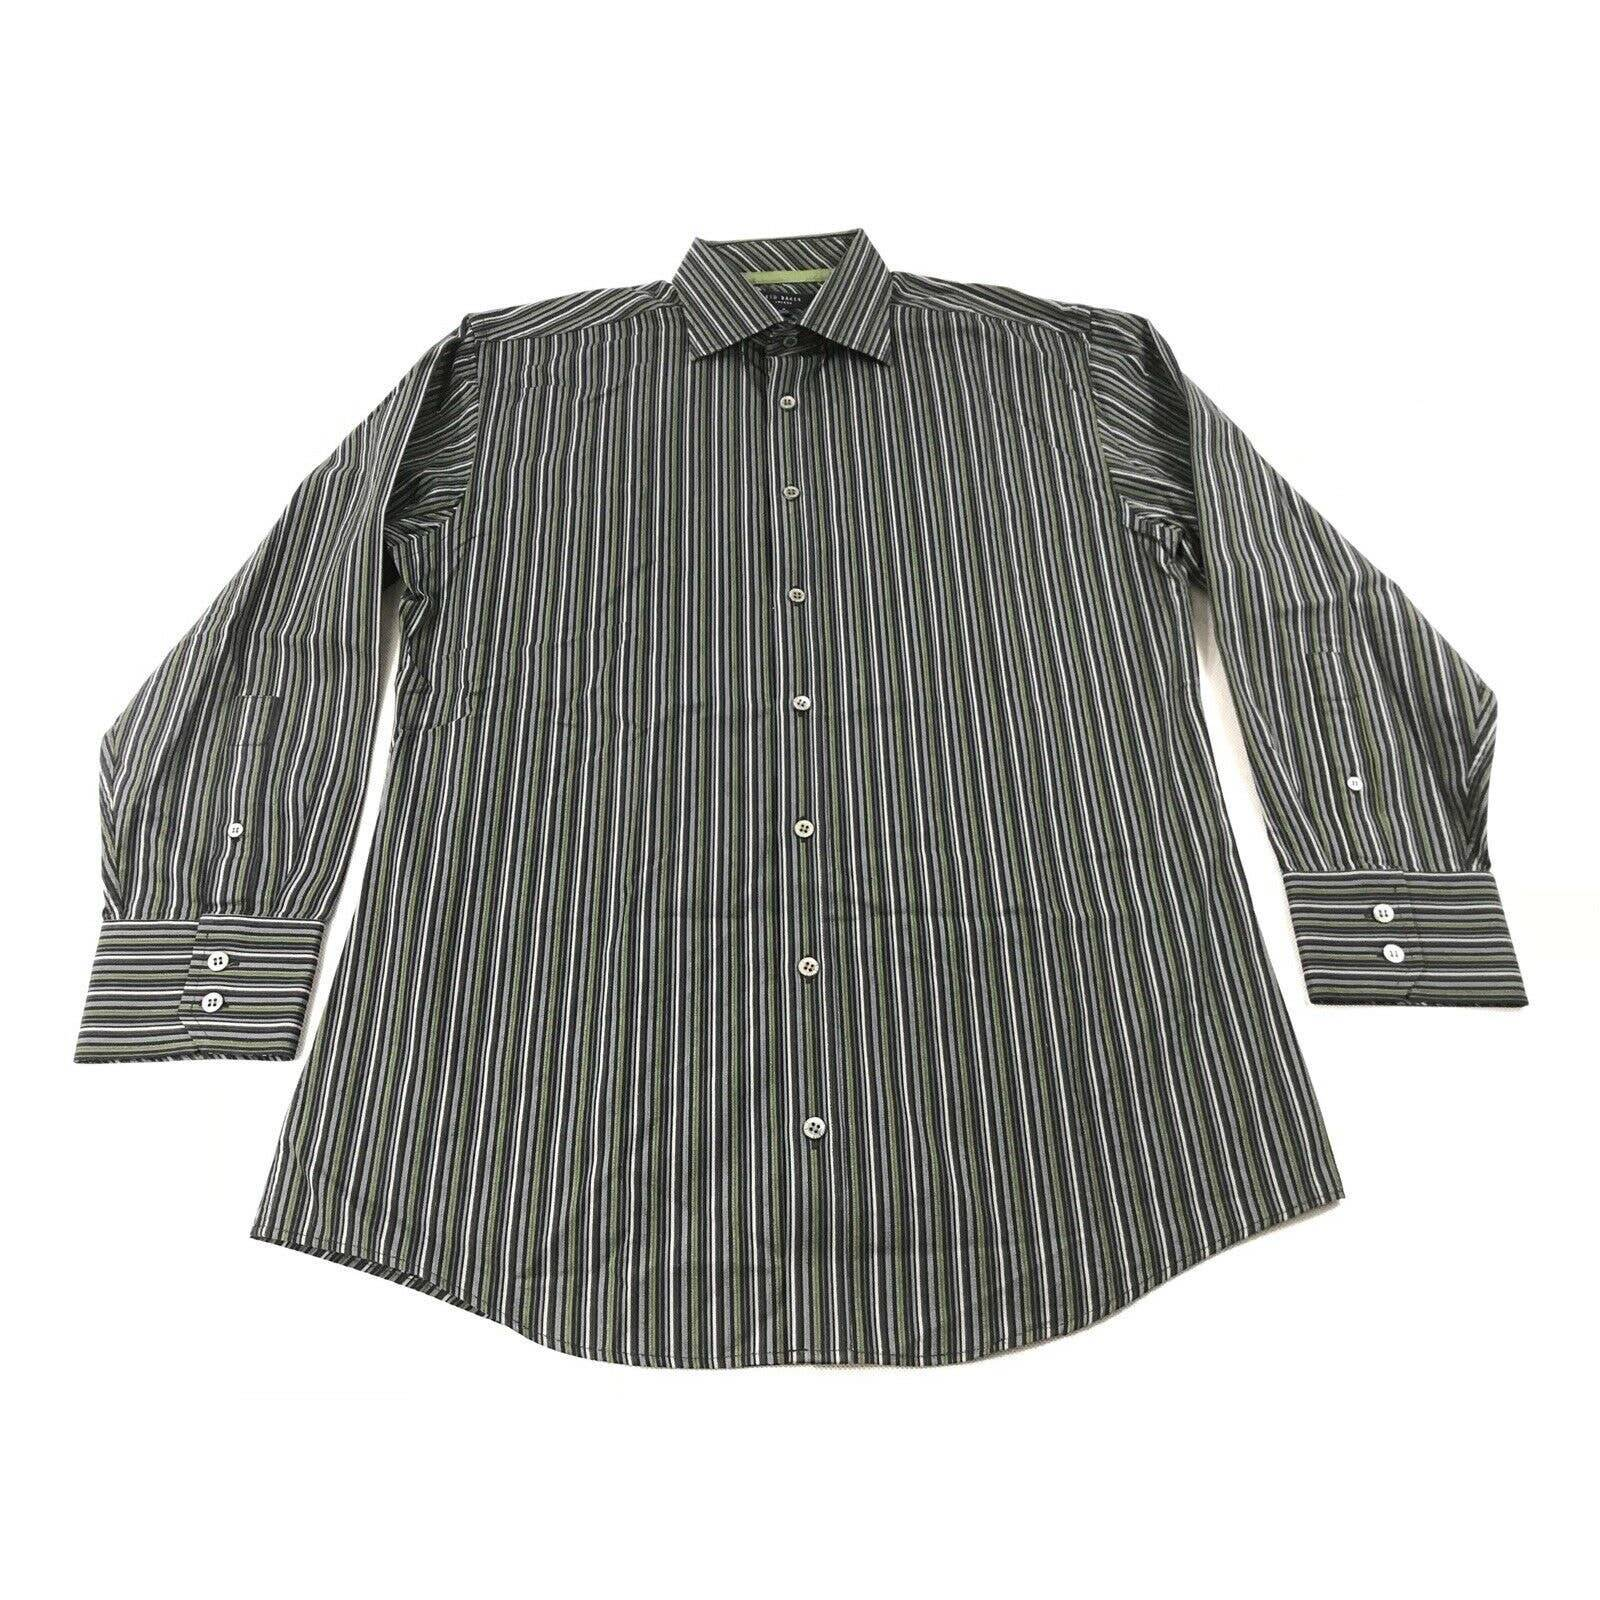 Ted Baker Striped Button Down 16 32/33